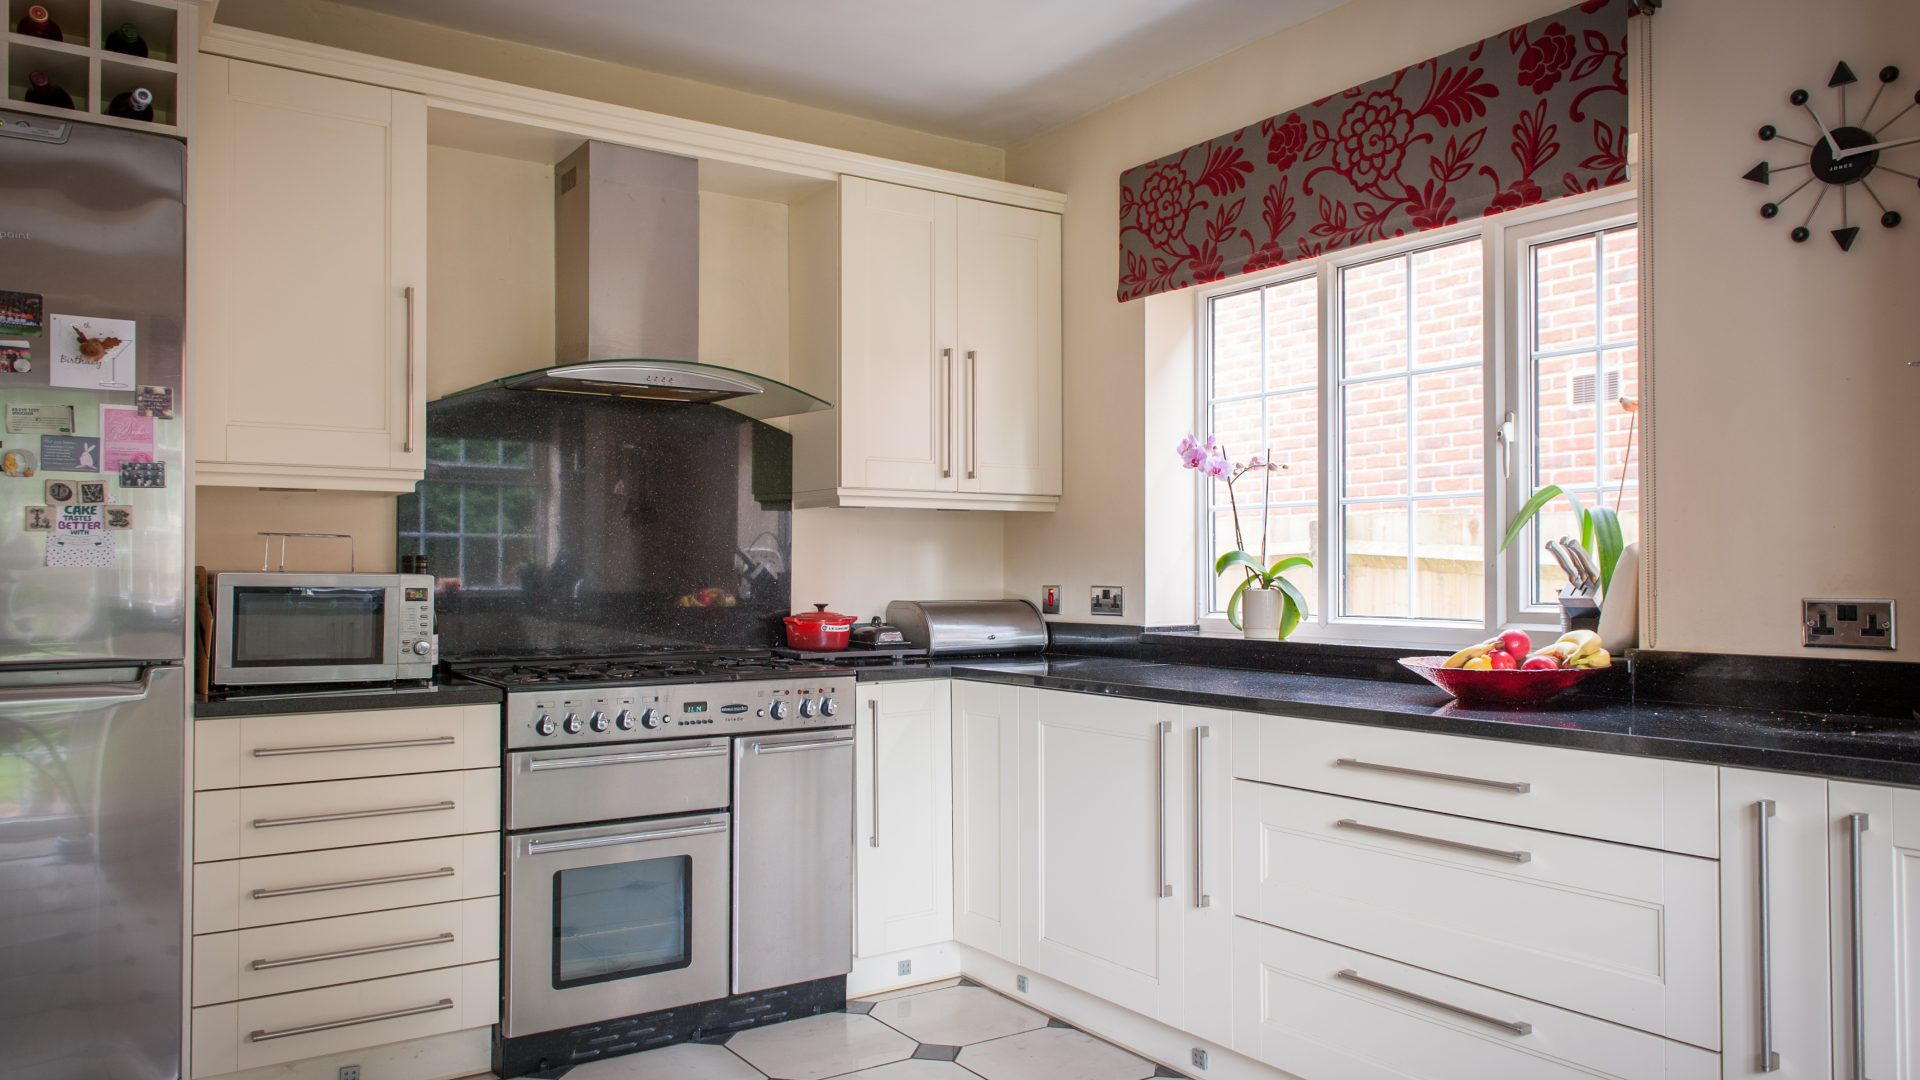 Warwick Road, Solihull for sale with Mr and Mrs Clarke estate agent